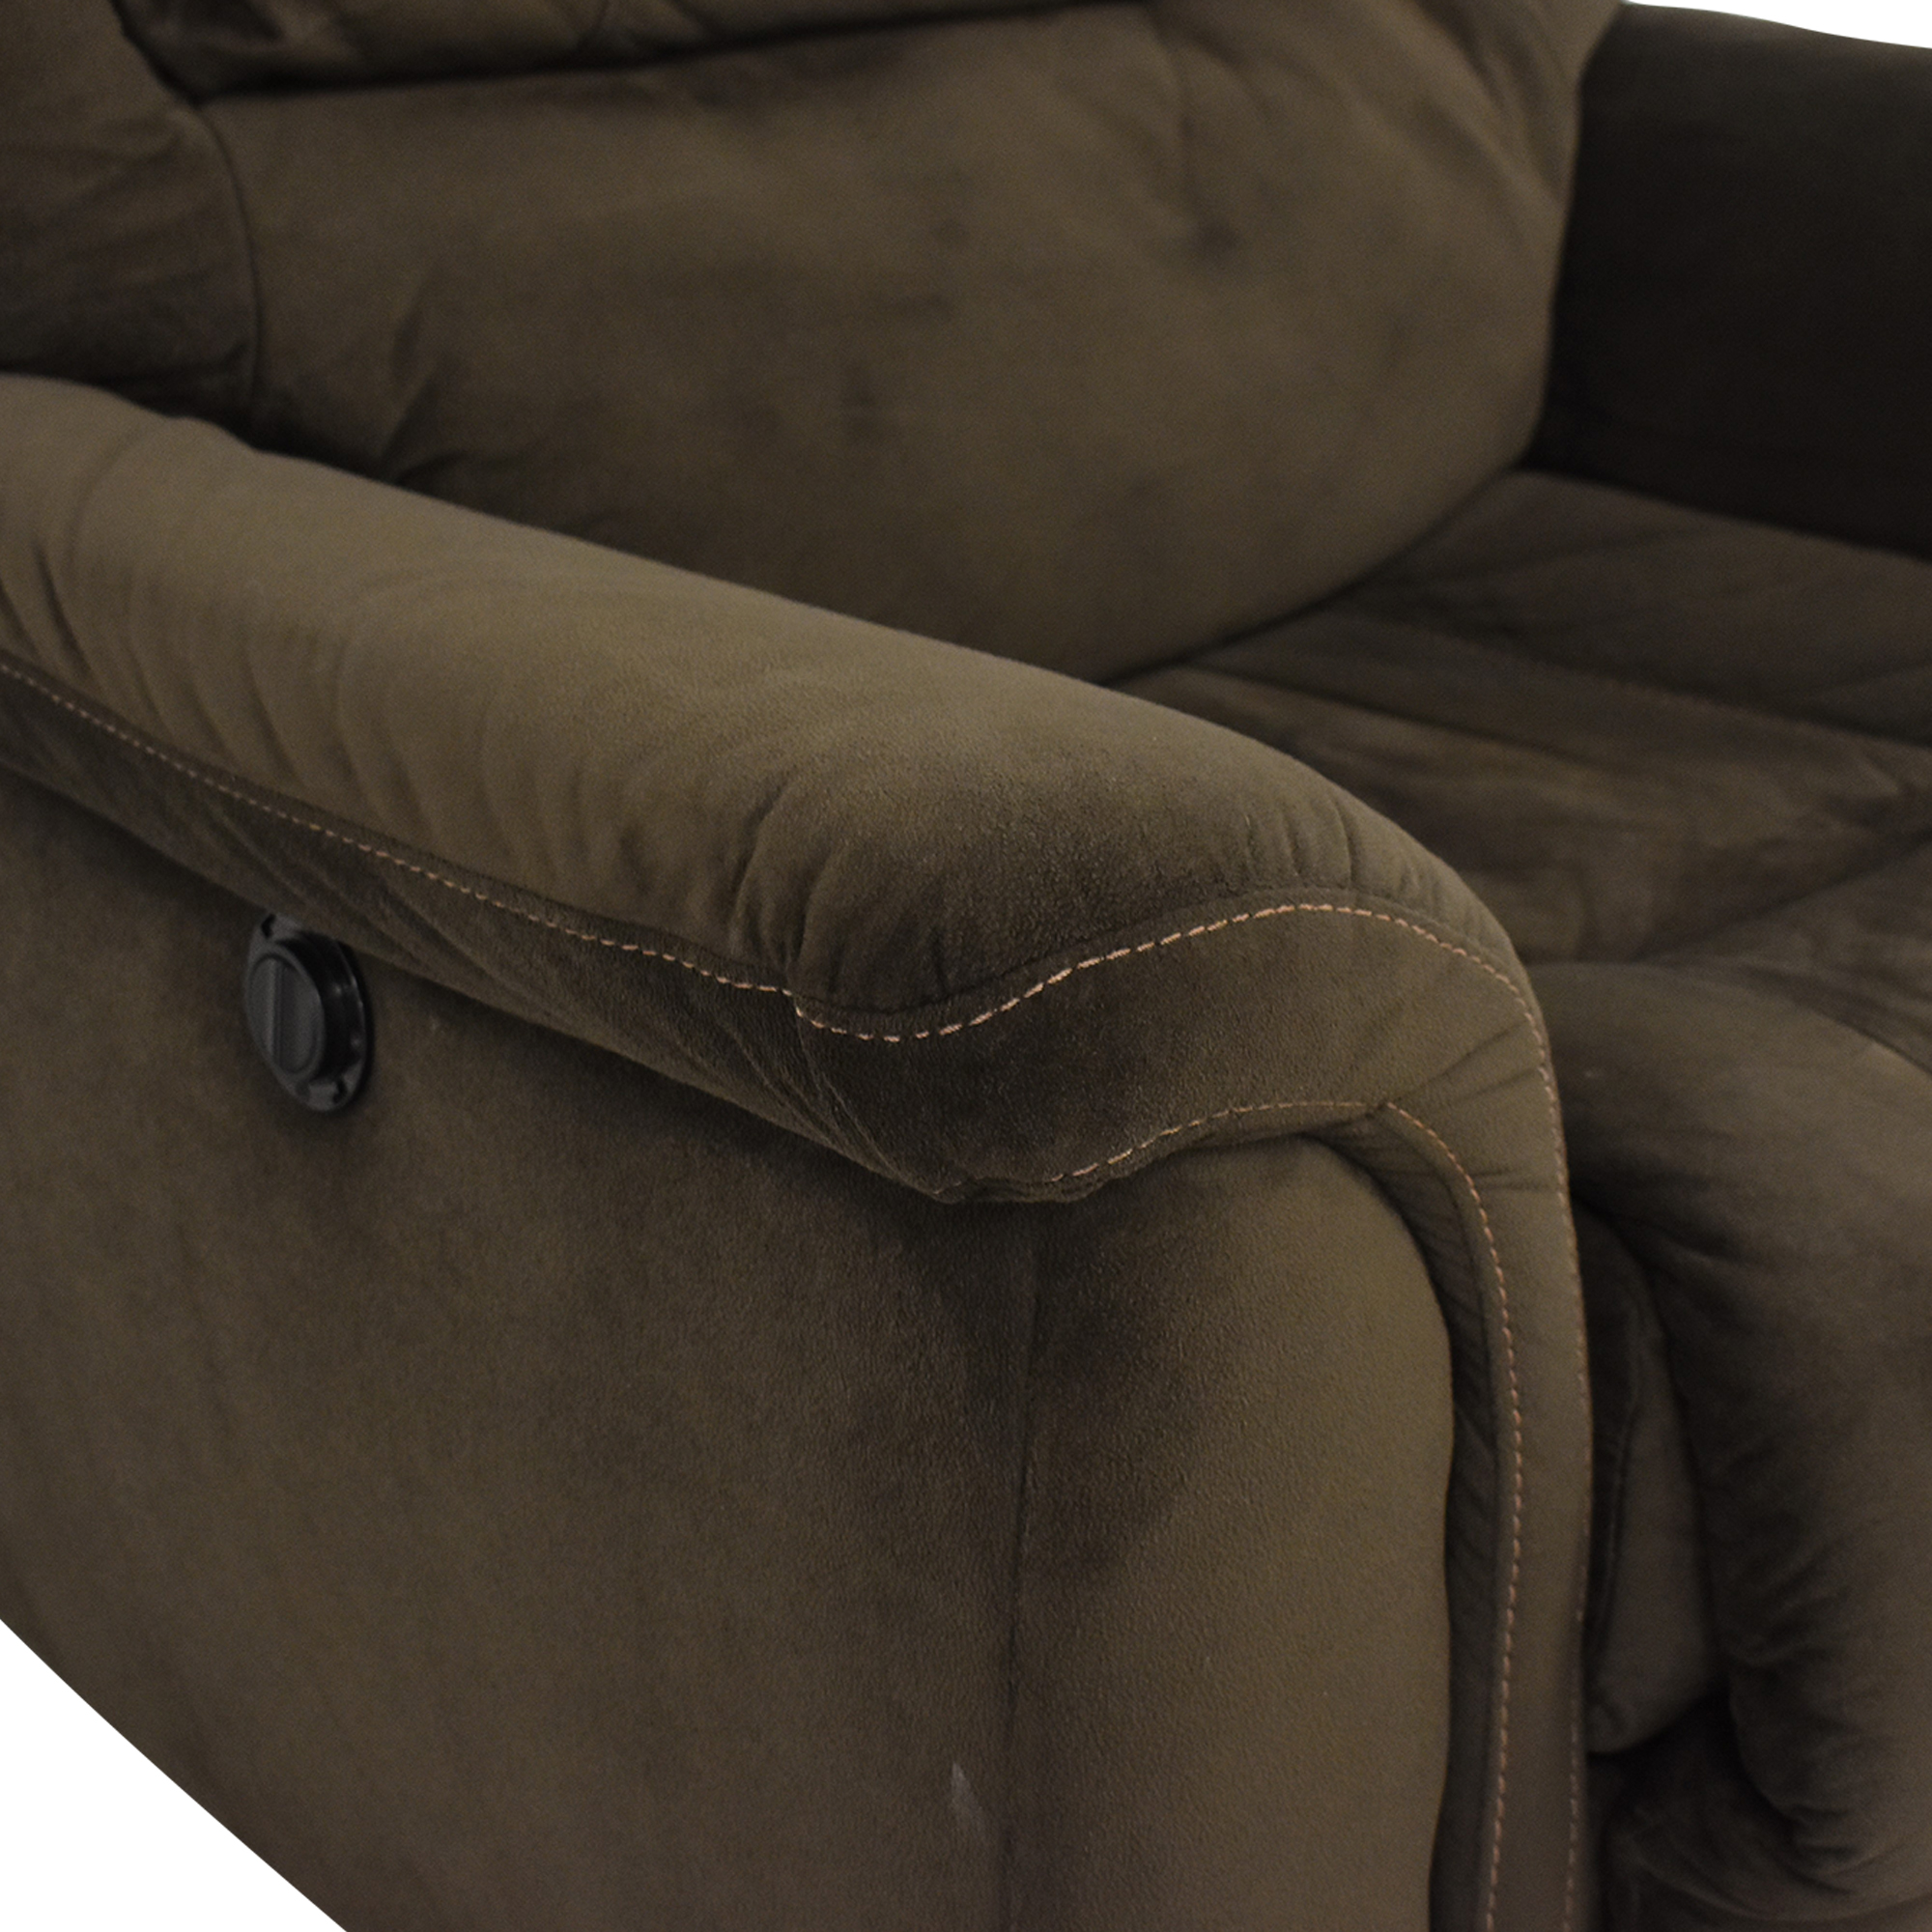 Raymour & Flanigan Raymour & Flanigan Power Recliner coupon